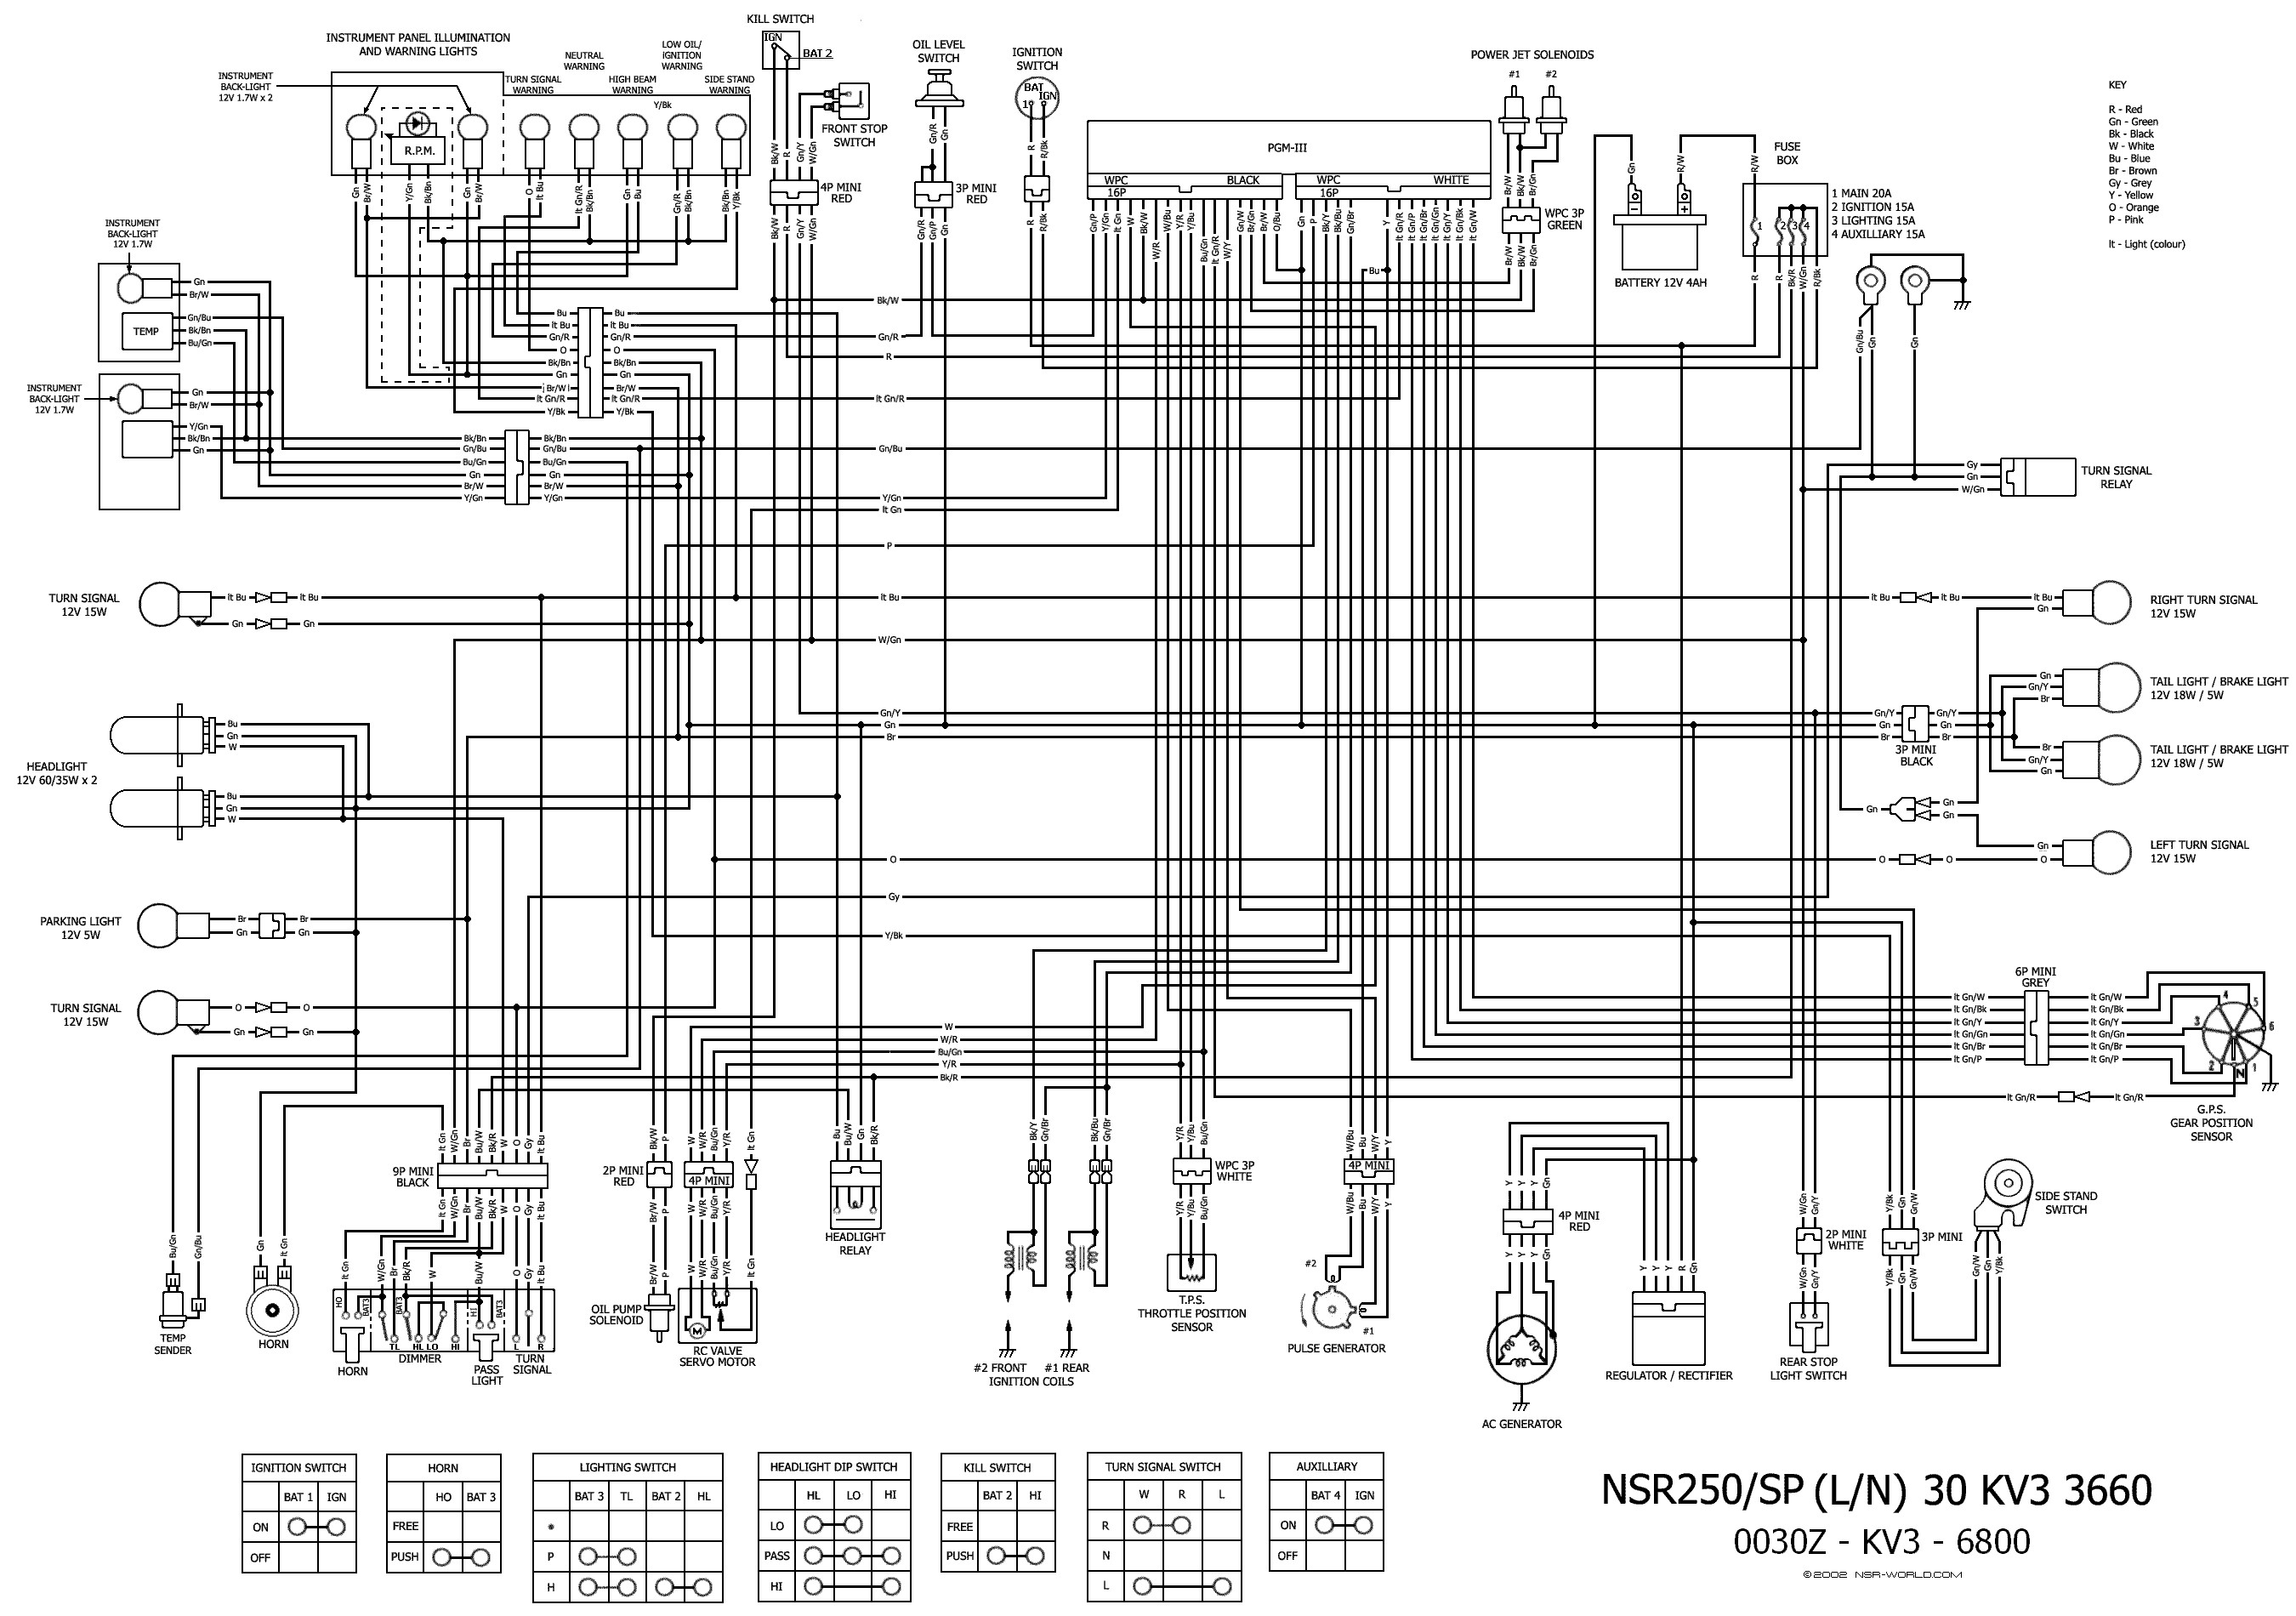 2003 bmw x5 stereo wiring diagram 2002 gsxr 1000 car cbr250r nsr250 diagrams tyga performance ...